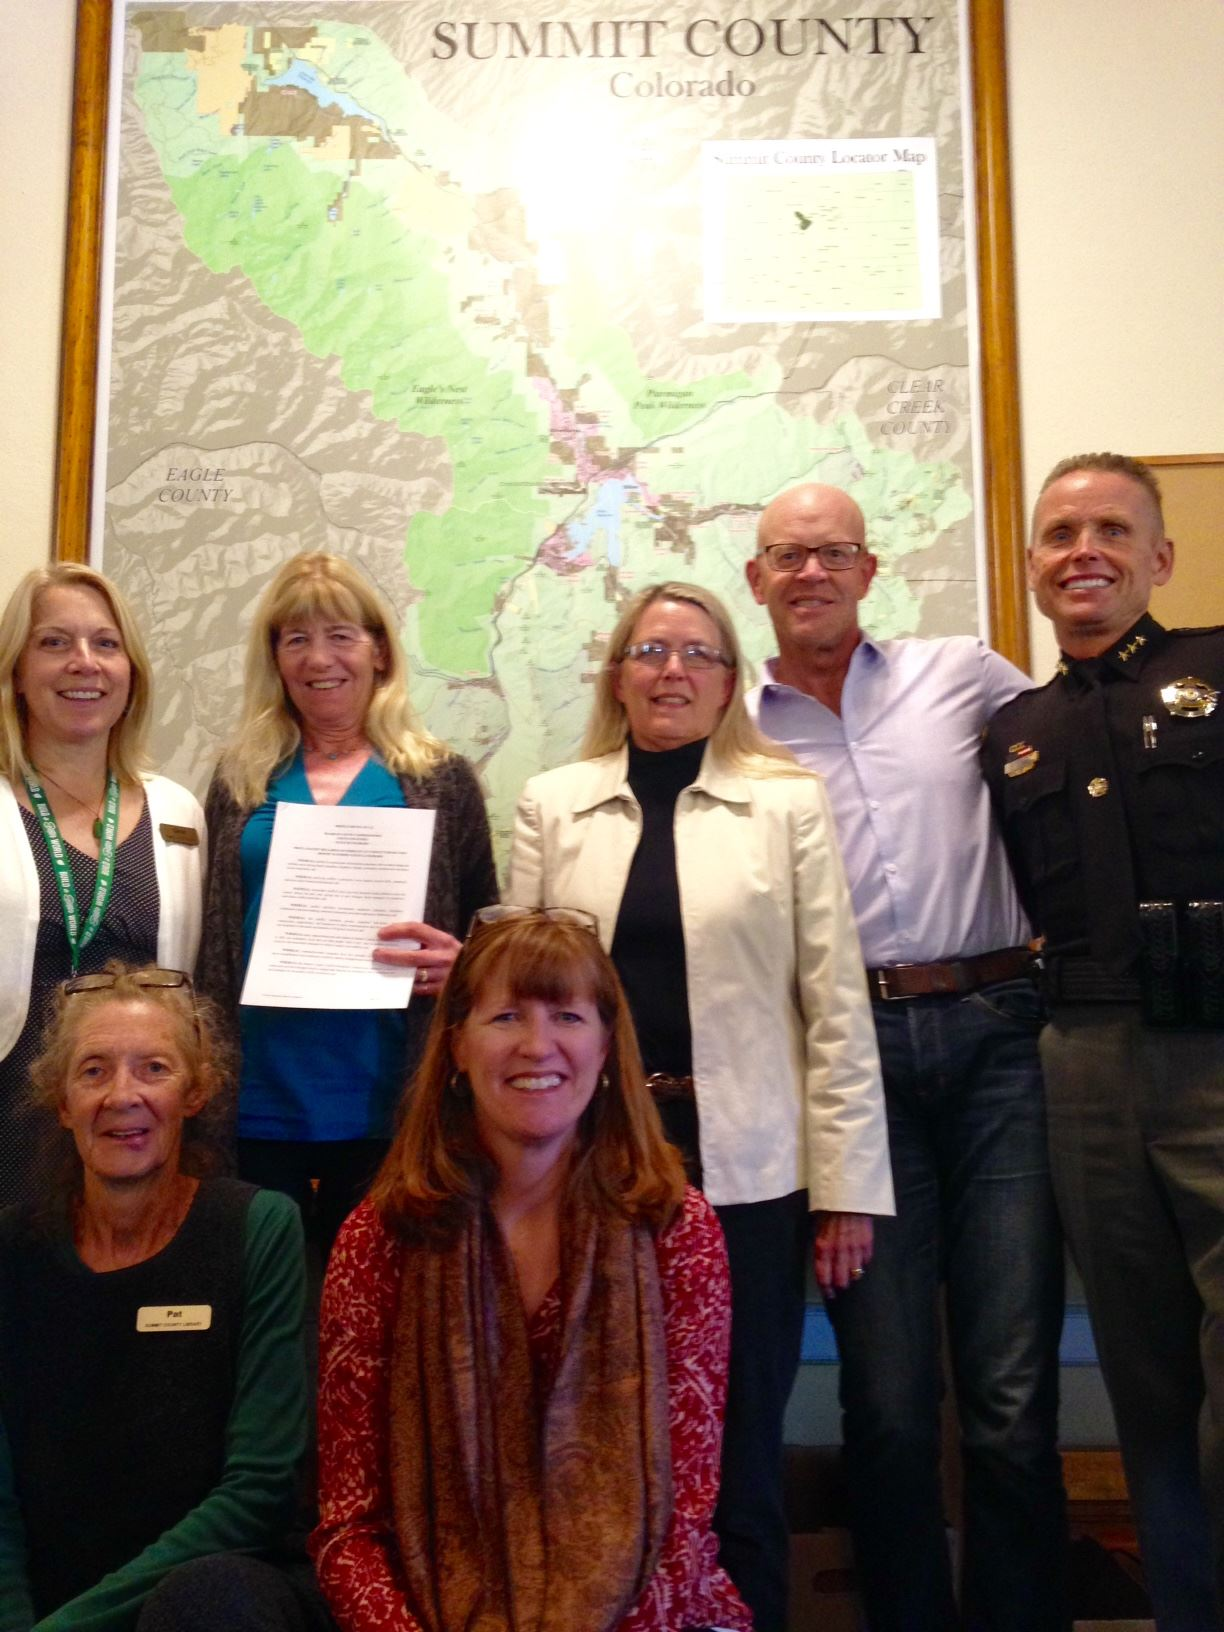 Seven community members stand with a proclamation.